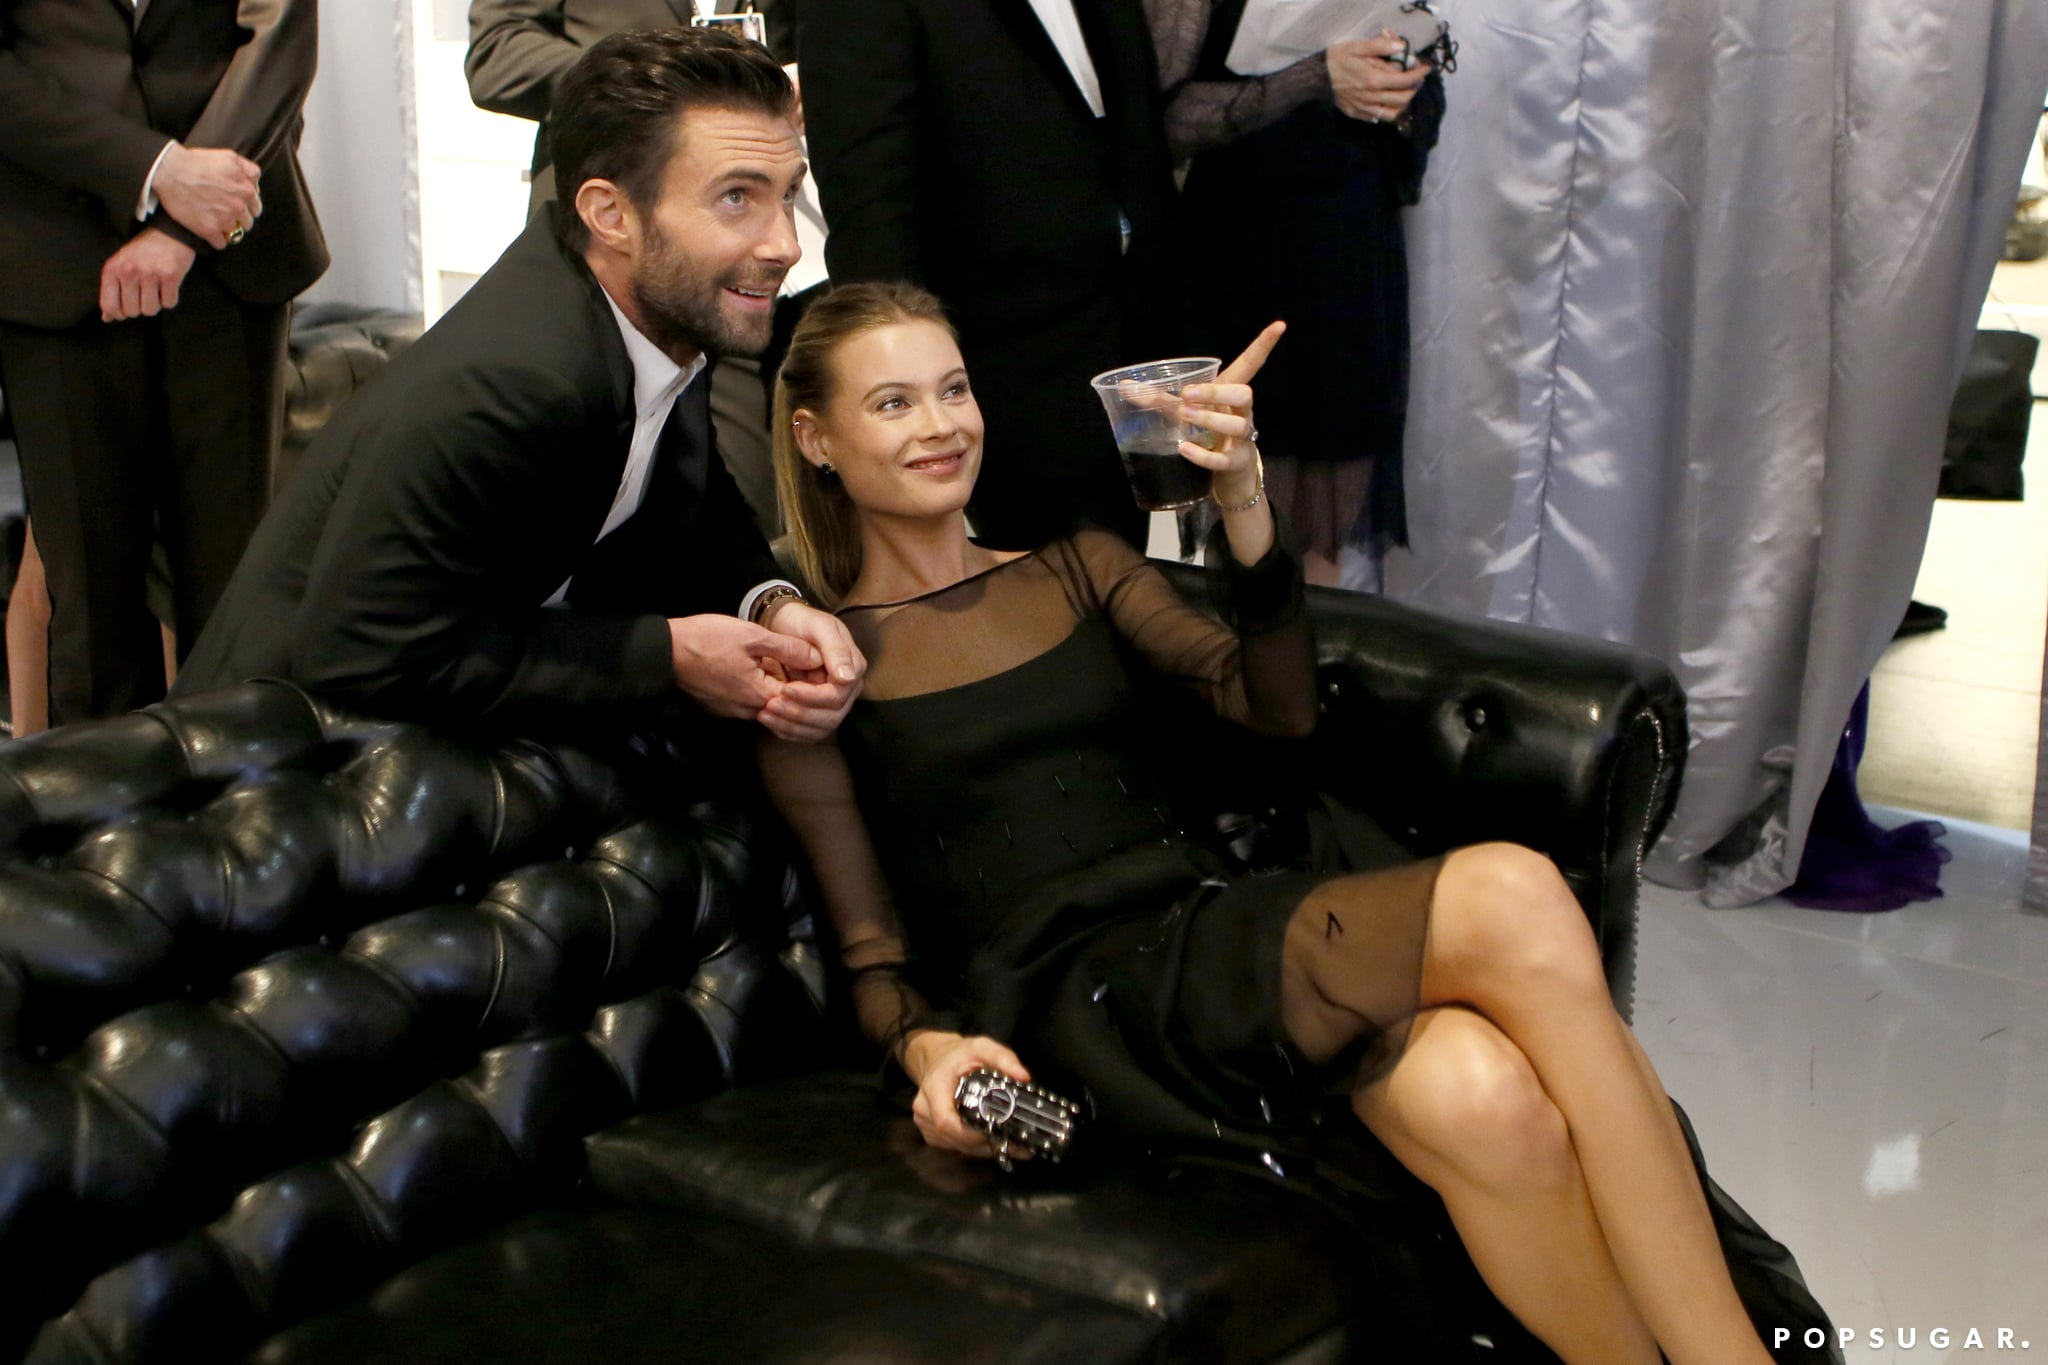 Adam Levine and Behati Prinsloo shared a relaxing moment.